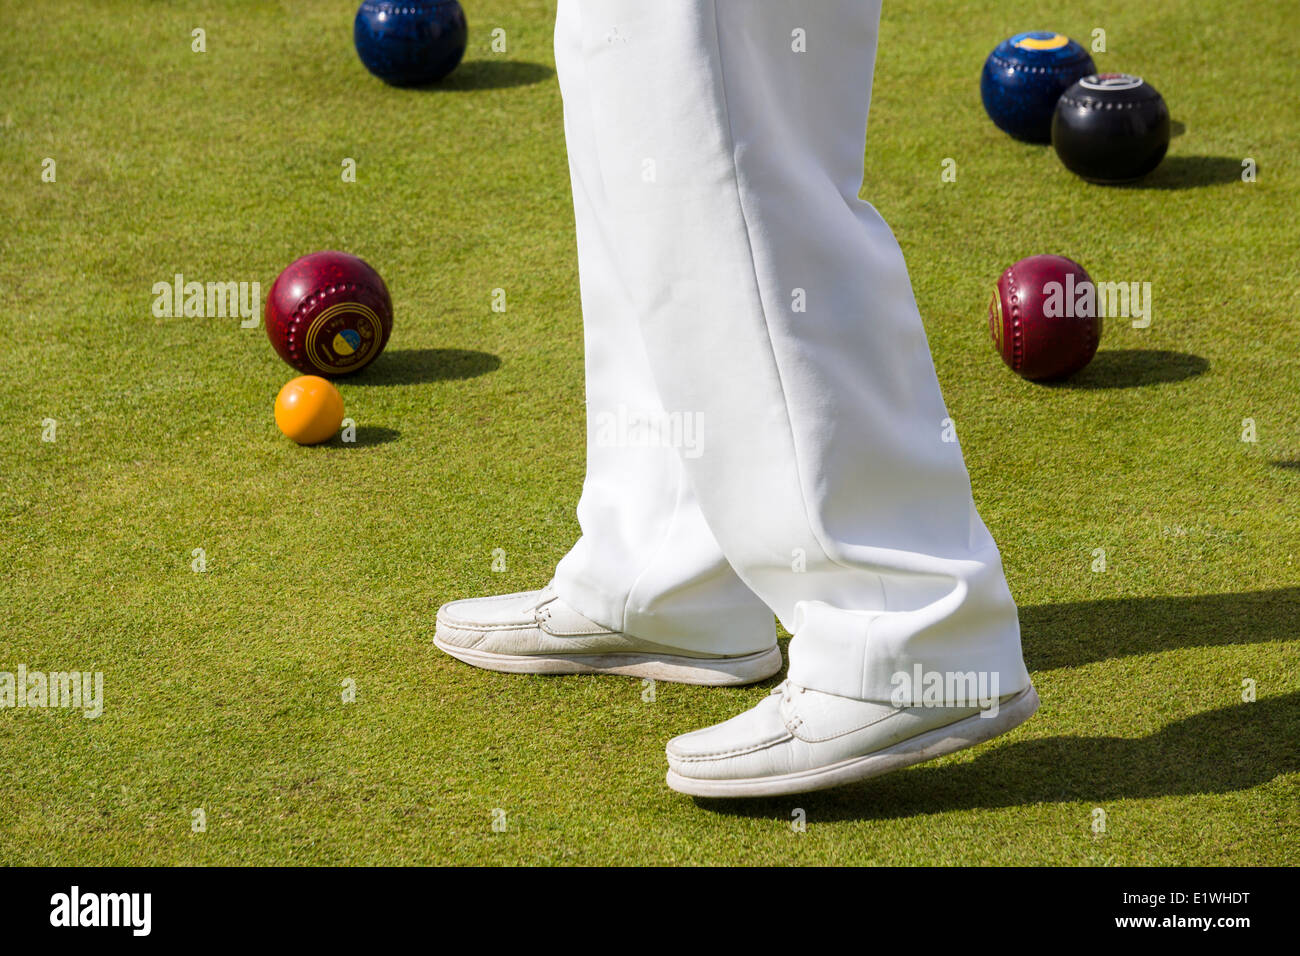 A Bowler observes the 'Jack' during a game of Lawn Bowls in the sunshine on a bowling green in the UK. - Stock Image